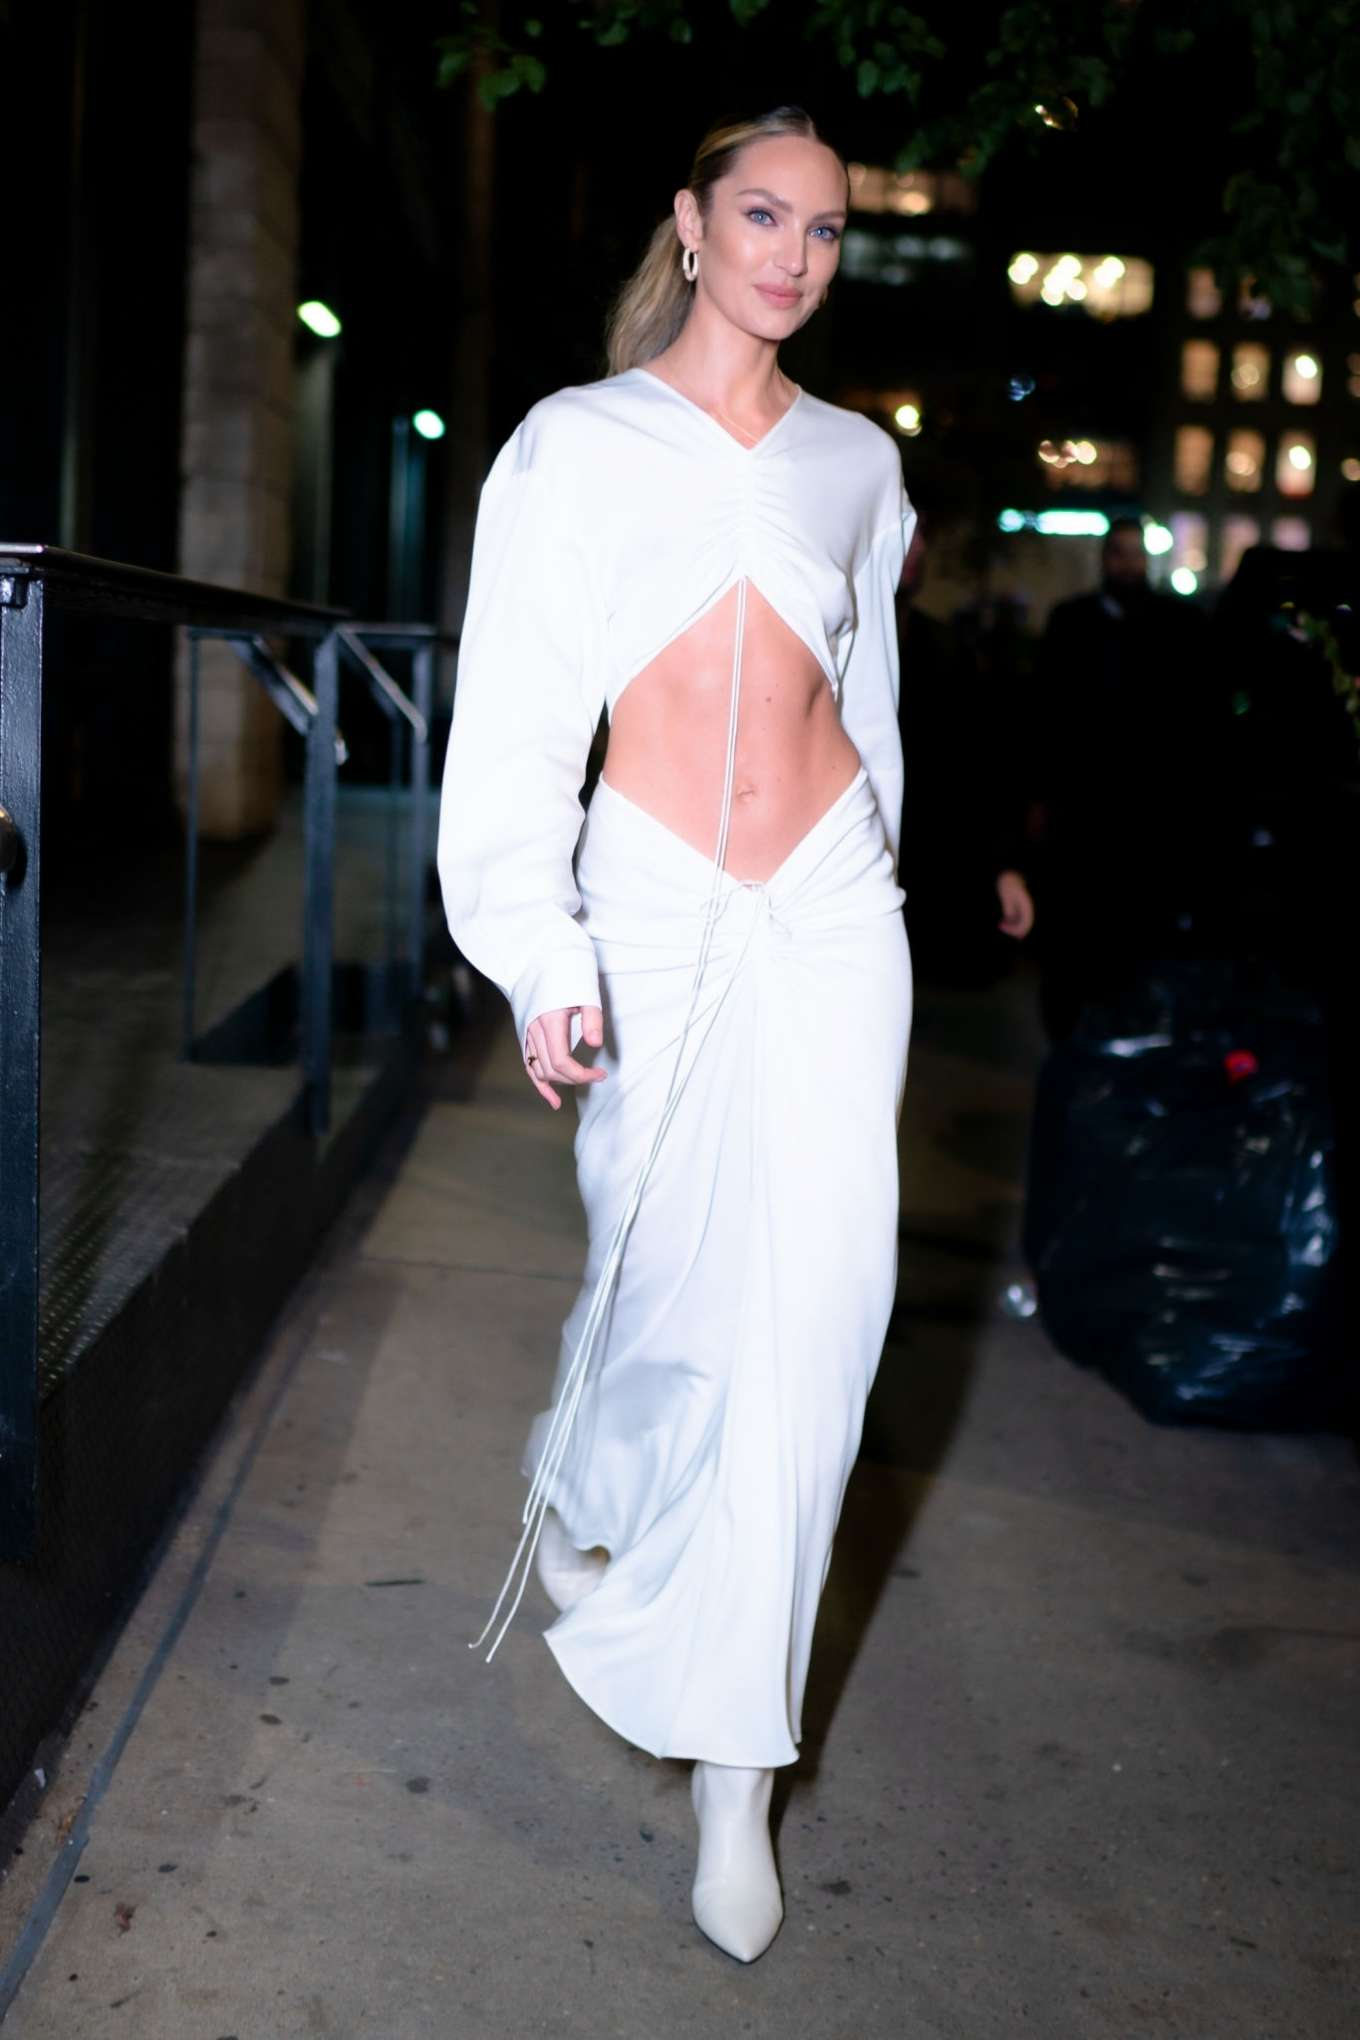 Candice Swanepoel 2019 : Candice Swanepoel in White Dress – Out in NYC-14